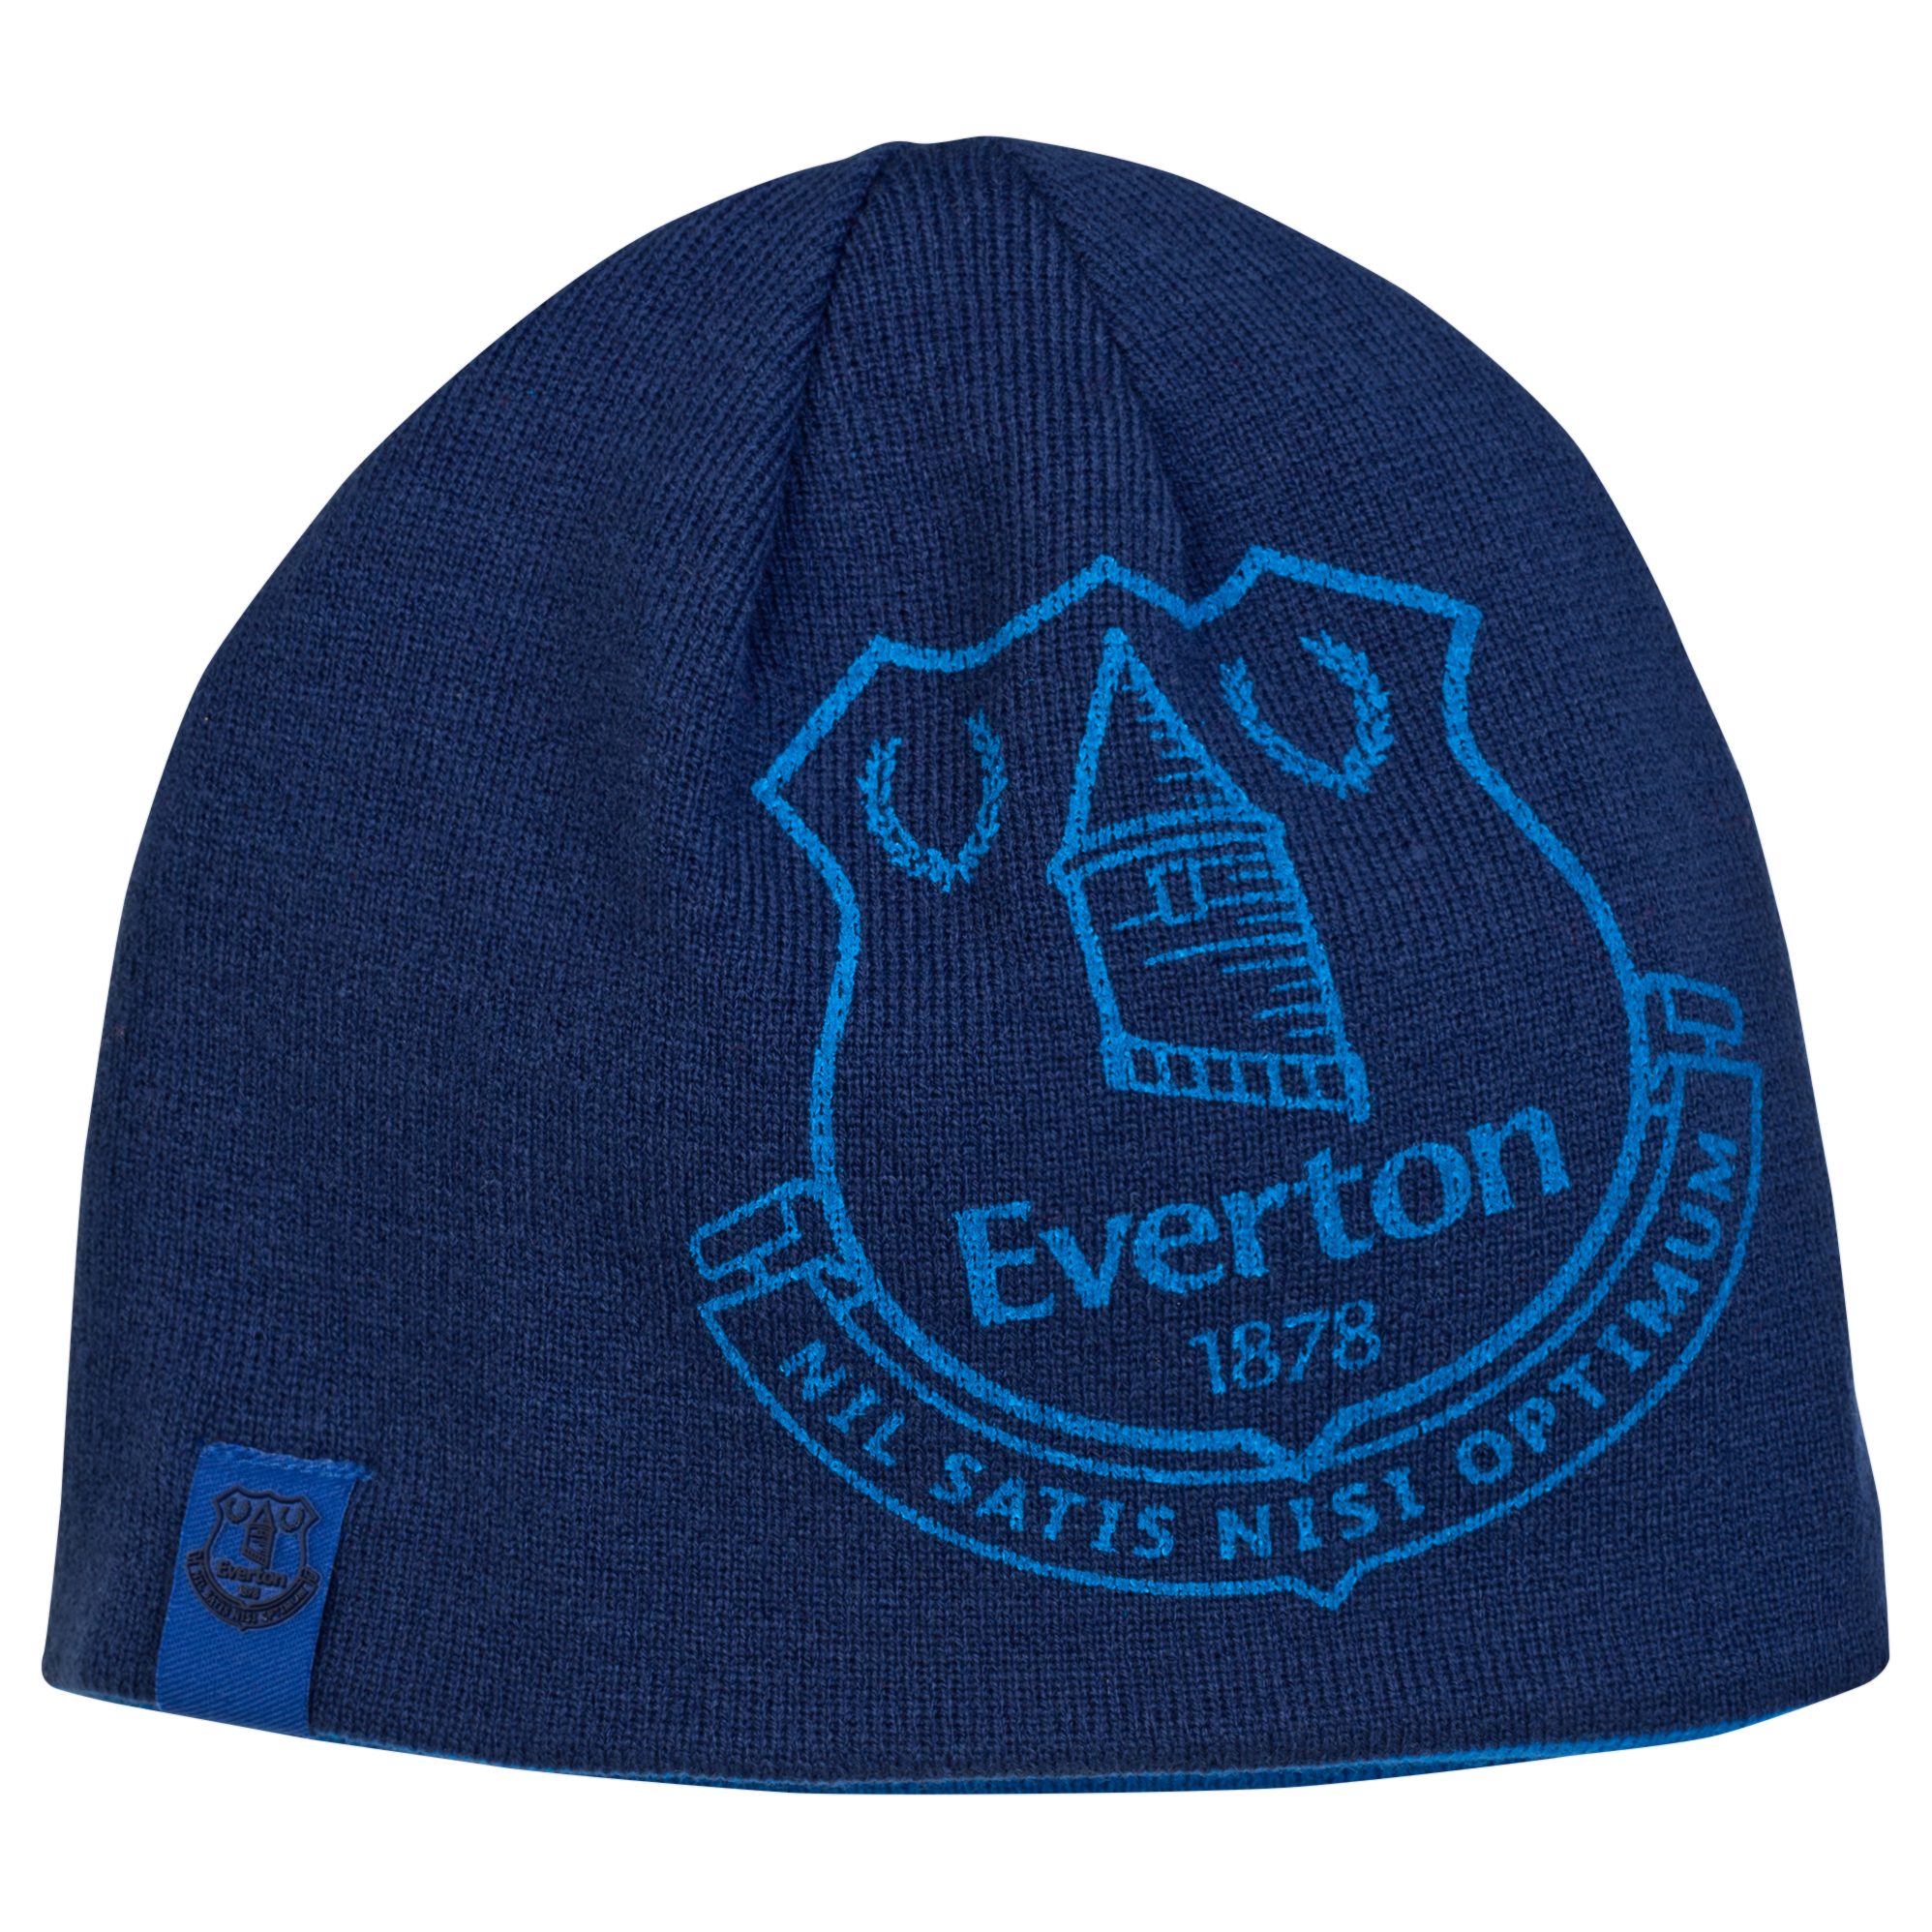 Everton Reverse Hat - Royal Blue/Navy - Adult